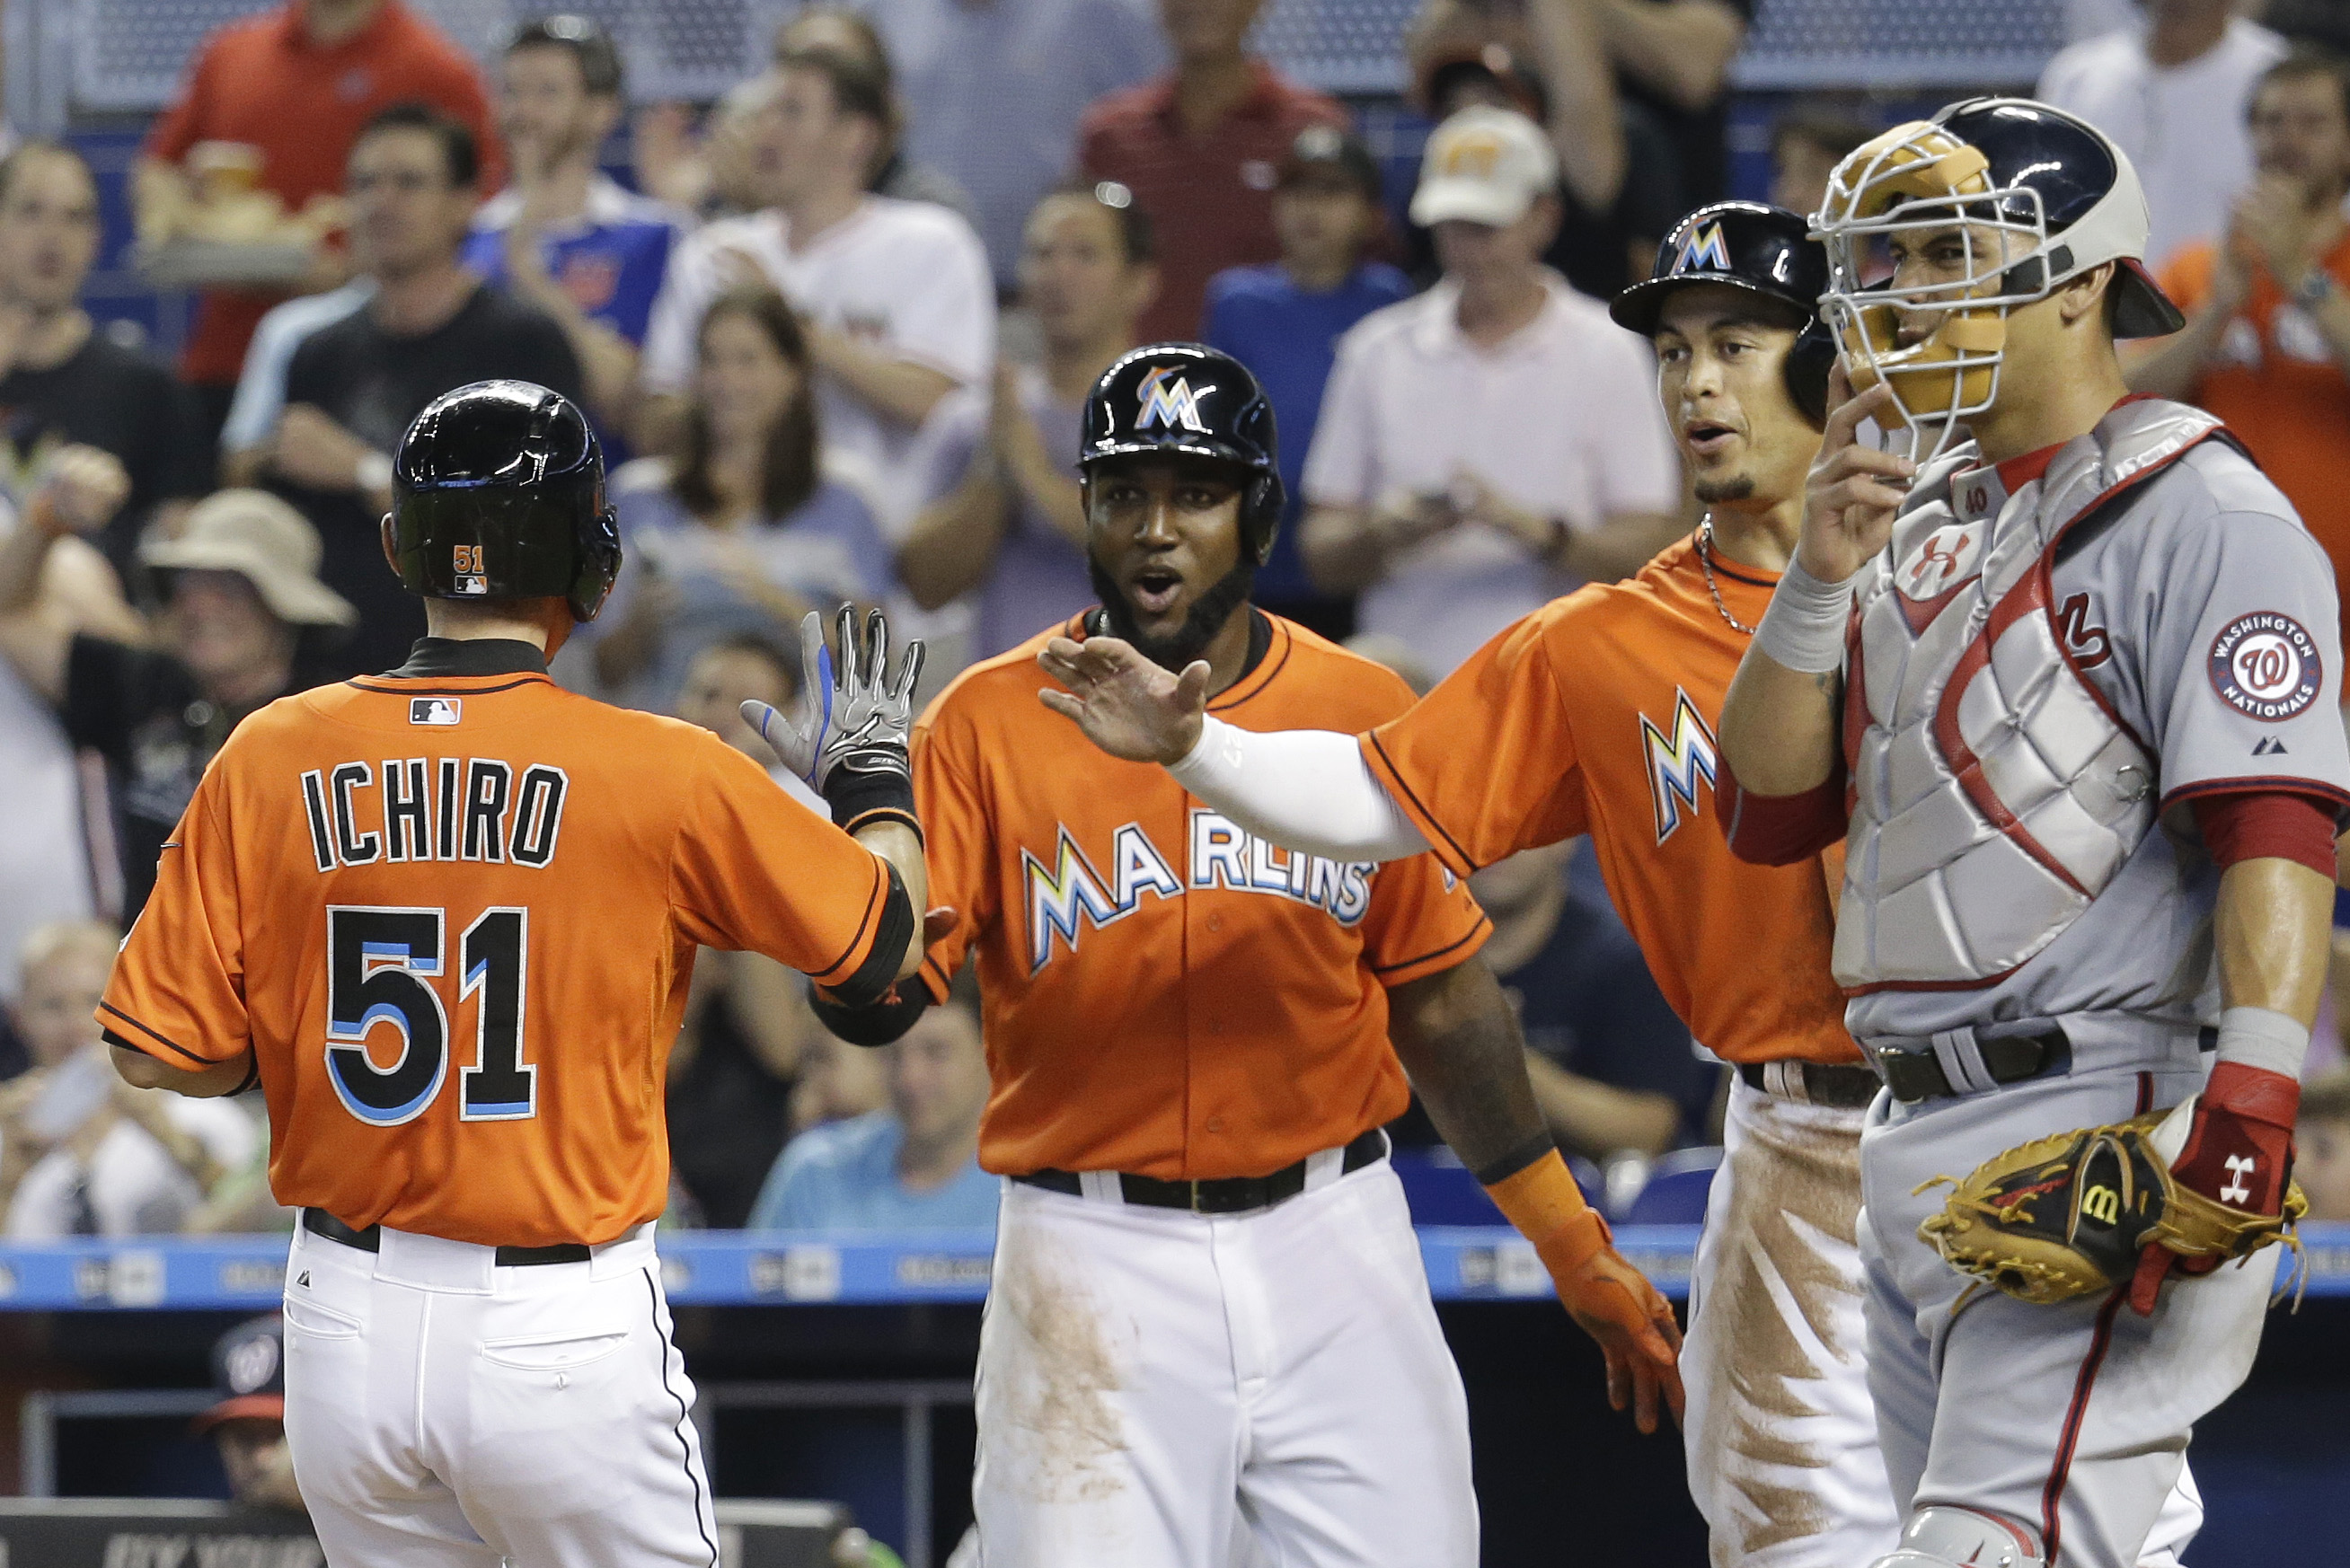 Miami Marlins' Ichiro Suzuki (51) is met by Marcell Ozuna, center, and Giancarlo Stanton, second from right, after they scored on a triple hit by Adeiny Hechavarria in the fourth inning of a baseball game, Sunday, April 26, 2015, in Miami. At right is Was